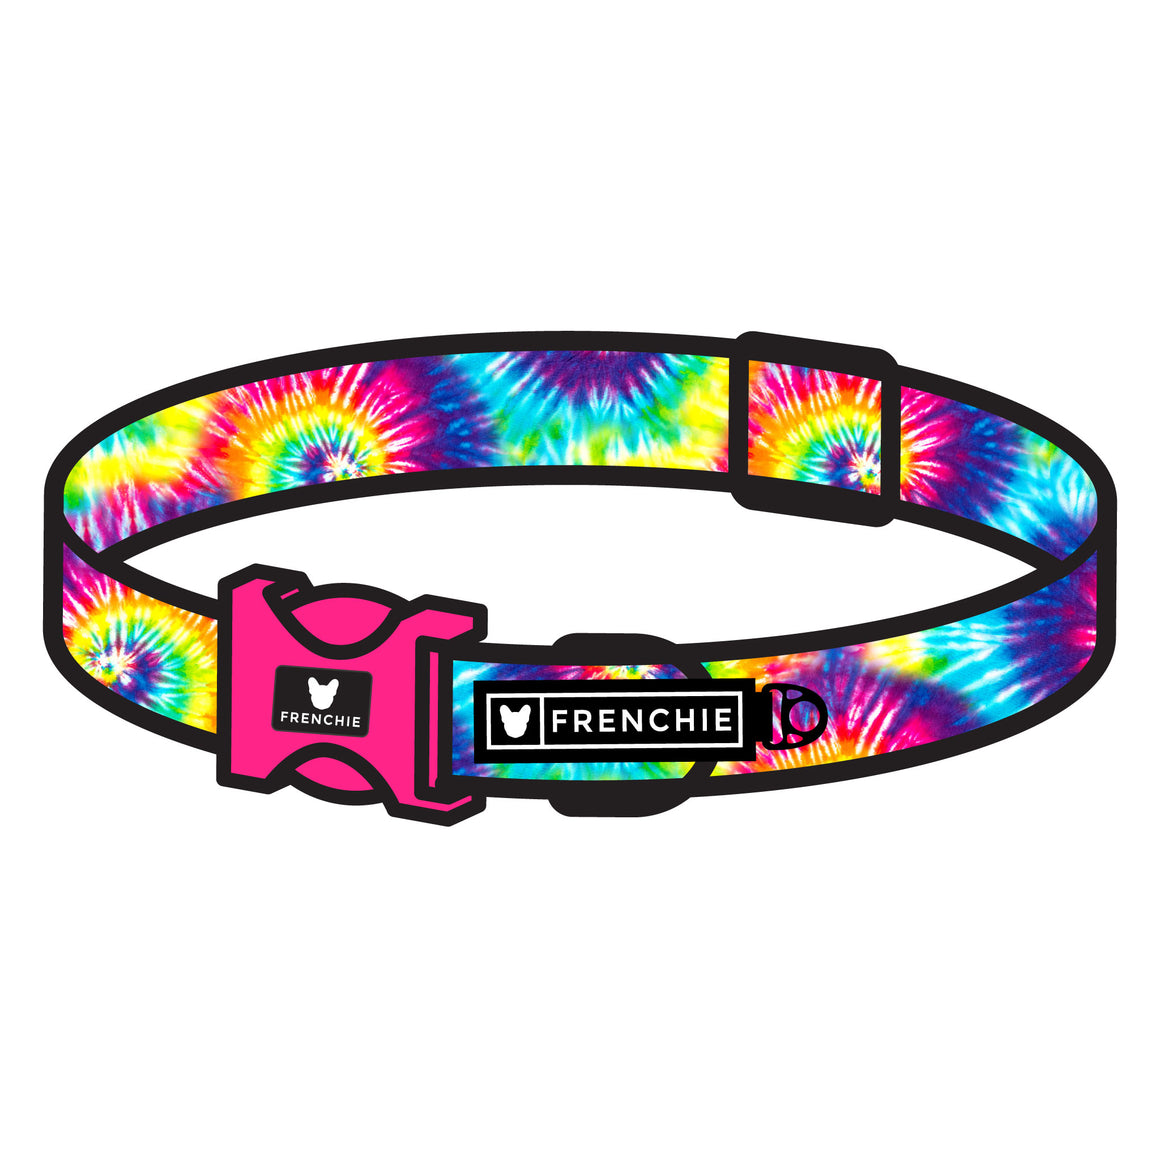 Frenchie Comfort Collar - Tie Dye